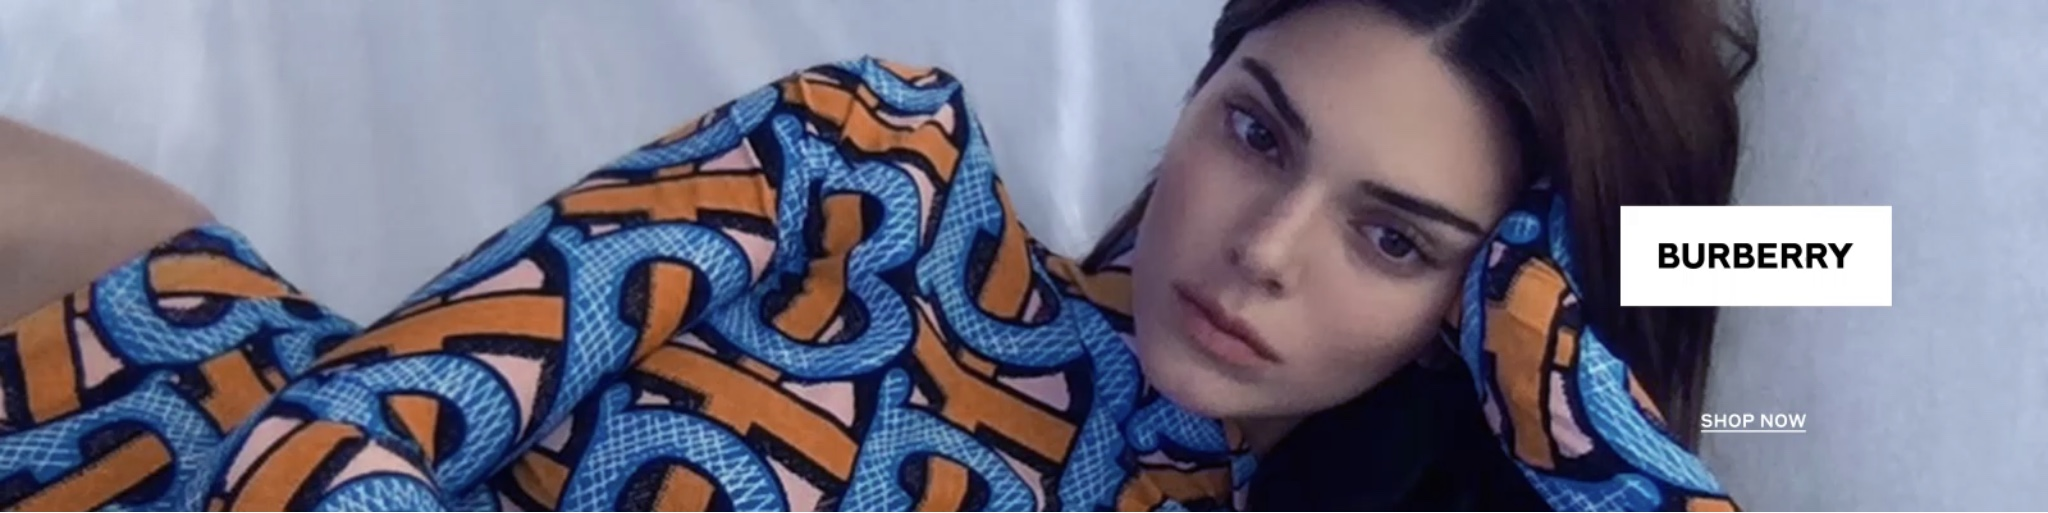 Burberry Kendall Jenner Buy Shop Top